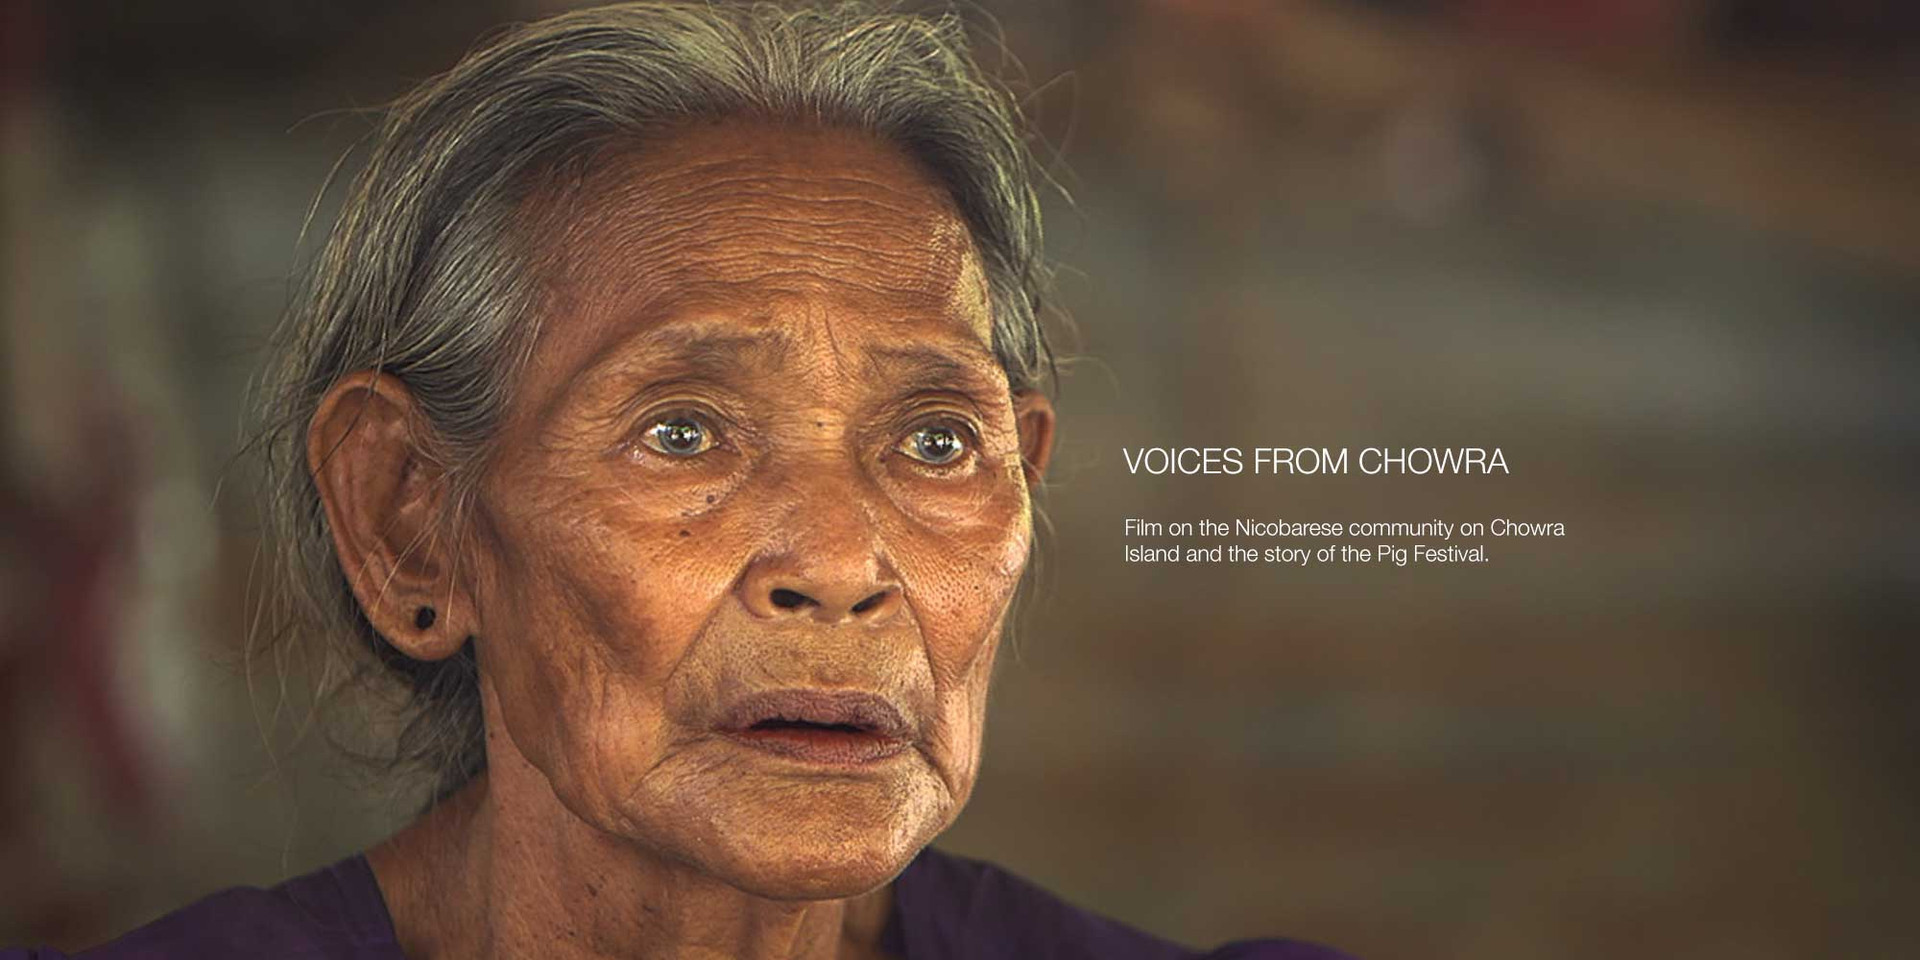 Voices from Chowra